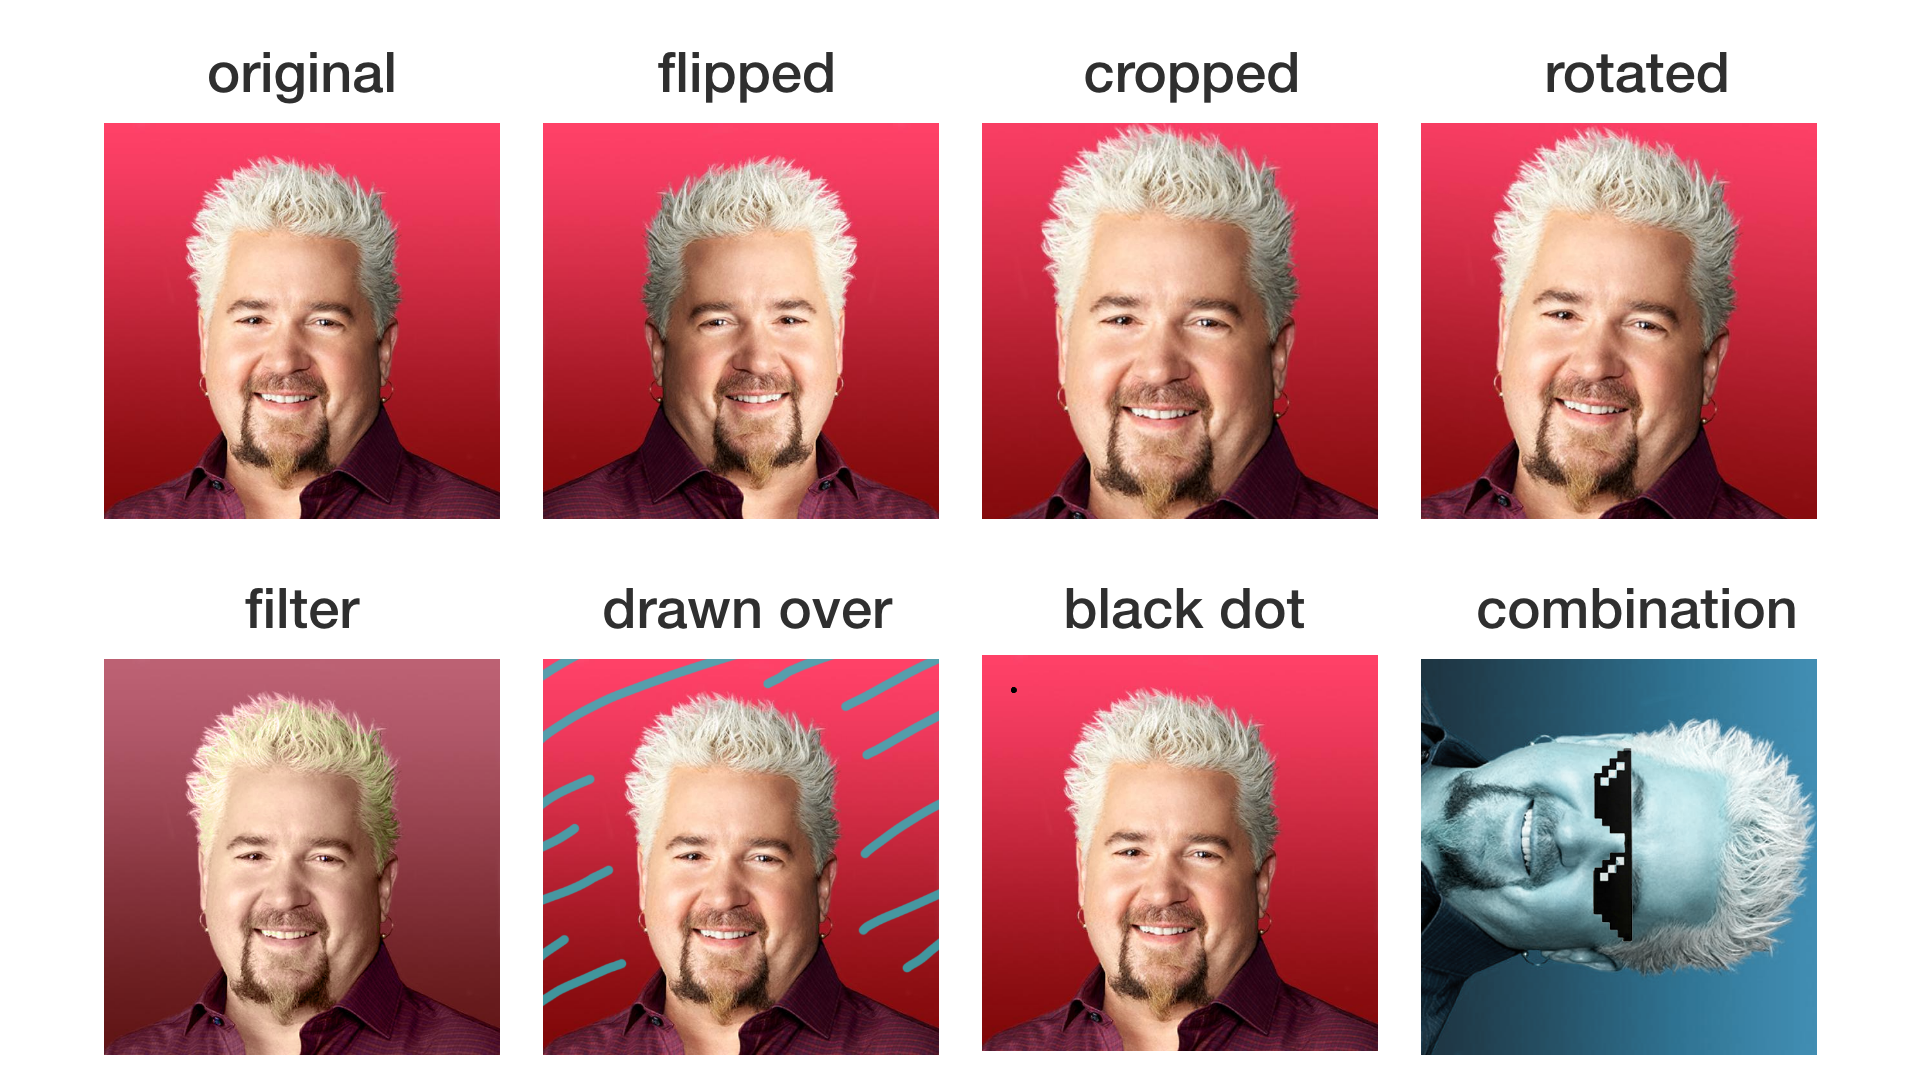 """Some examples of what could be a """"different image"""" from the original."""